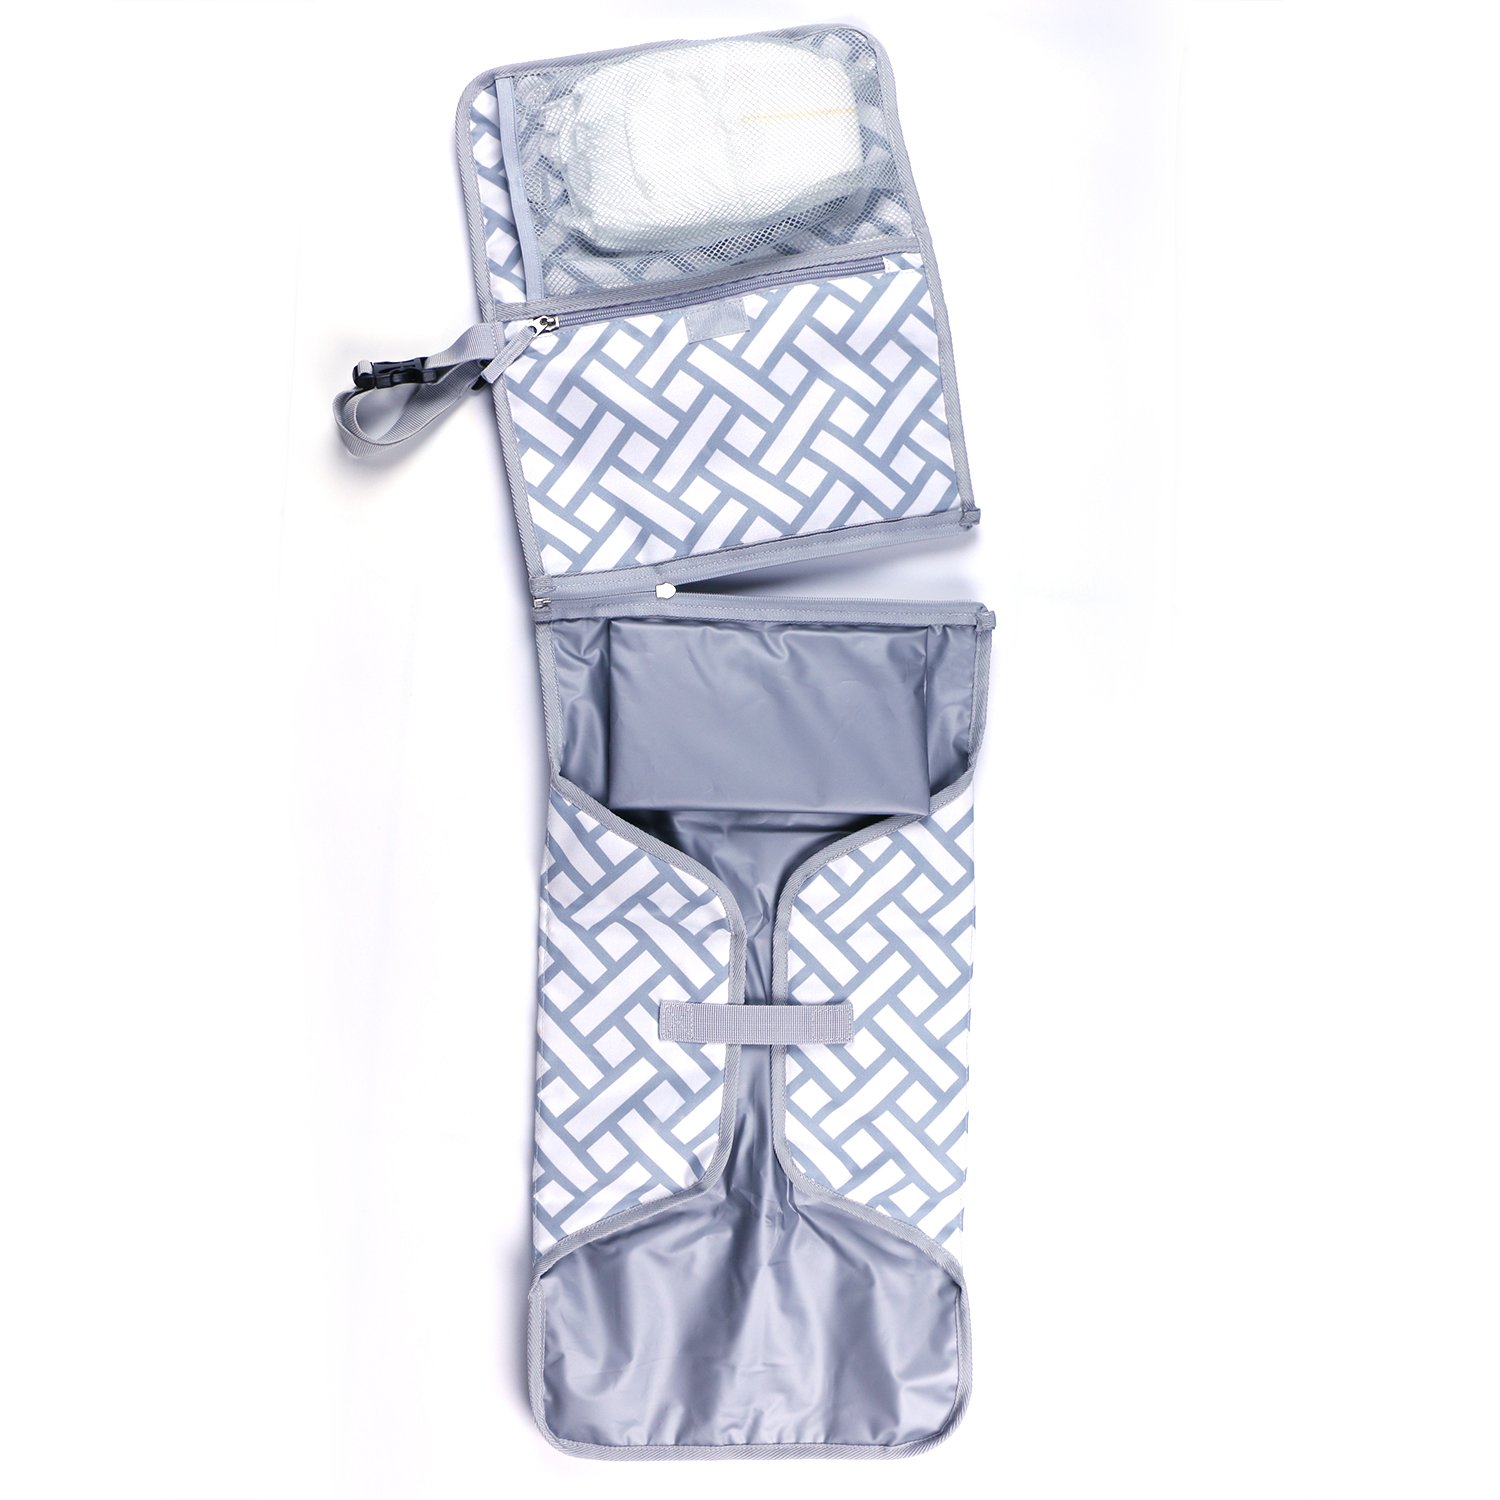 Baby Changing Pad By Boutique Baby Portable Diaper Changing Pad Station Waterproof Extra Long  Travel Clutch by Boutique Baby (Image #3)